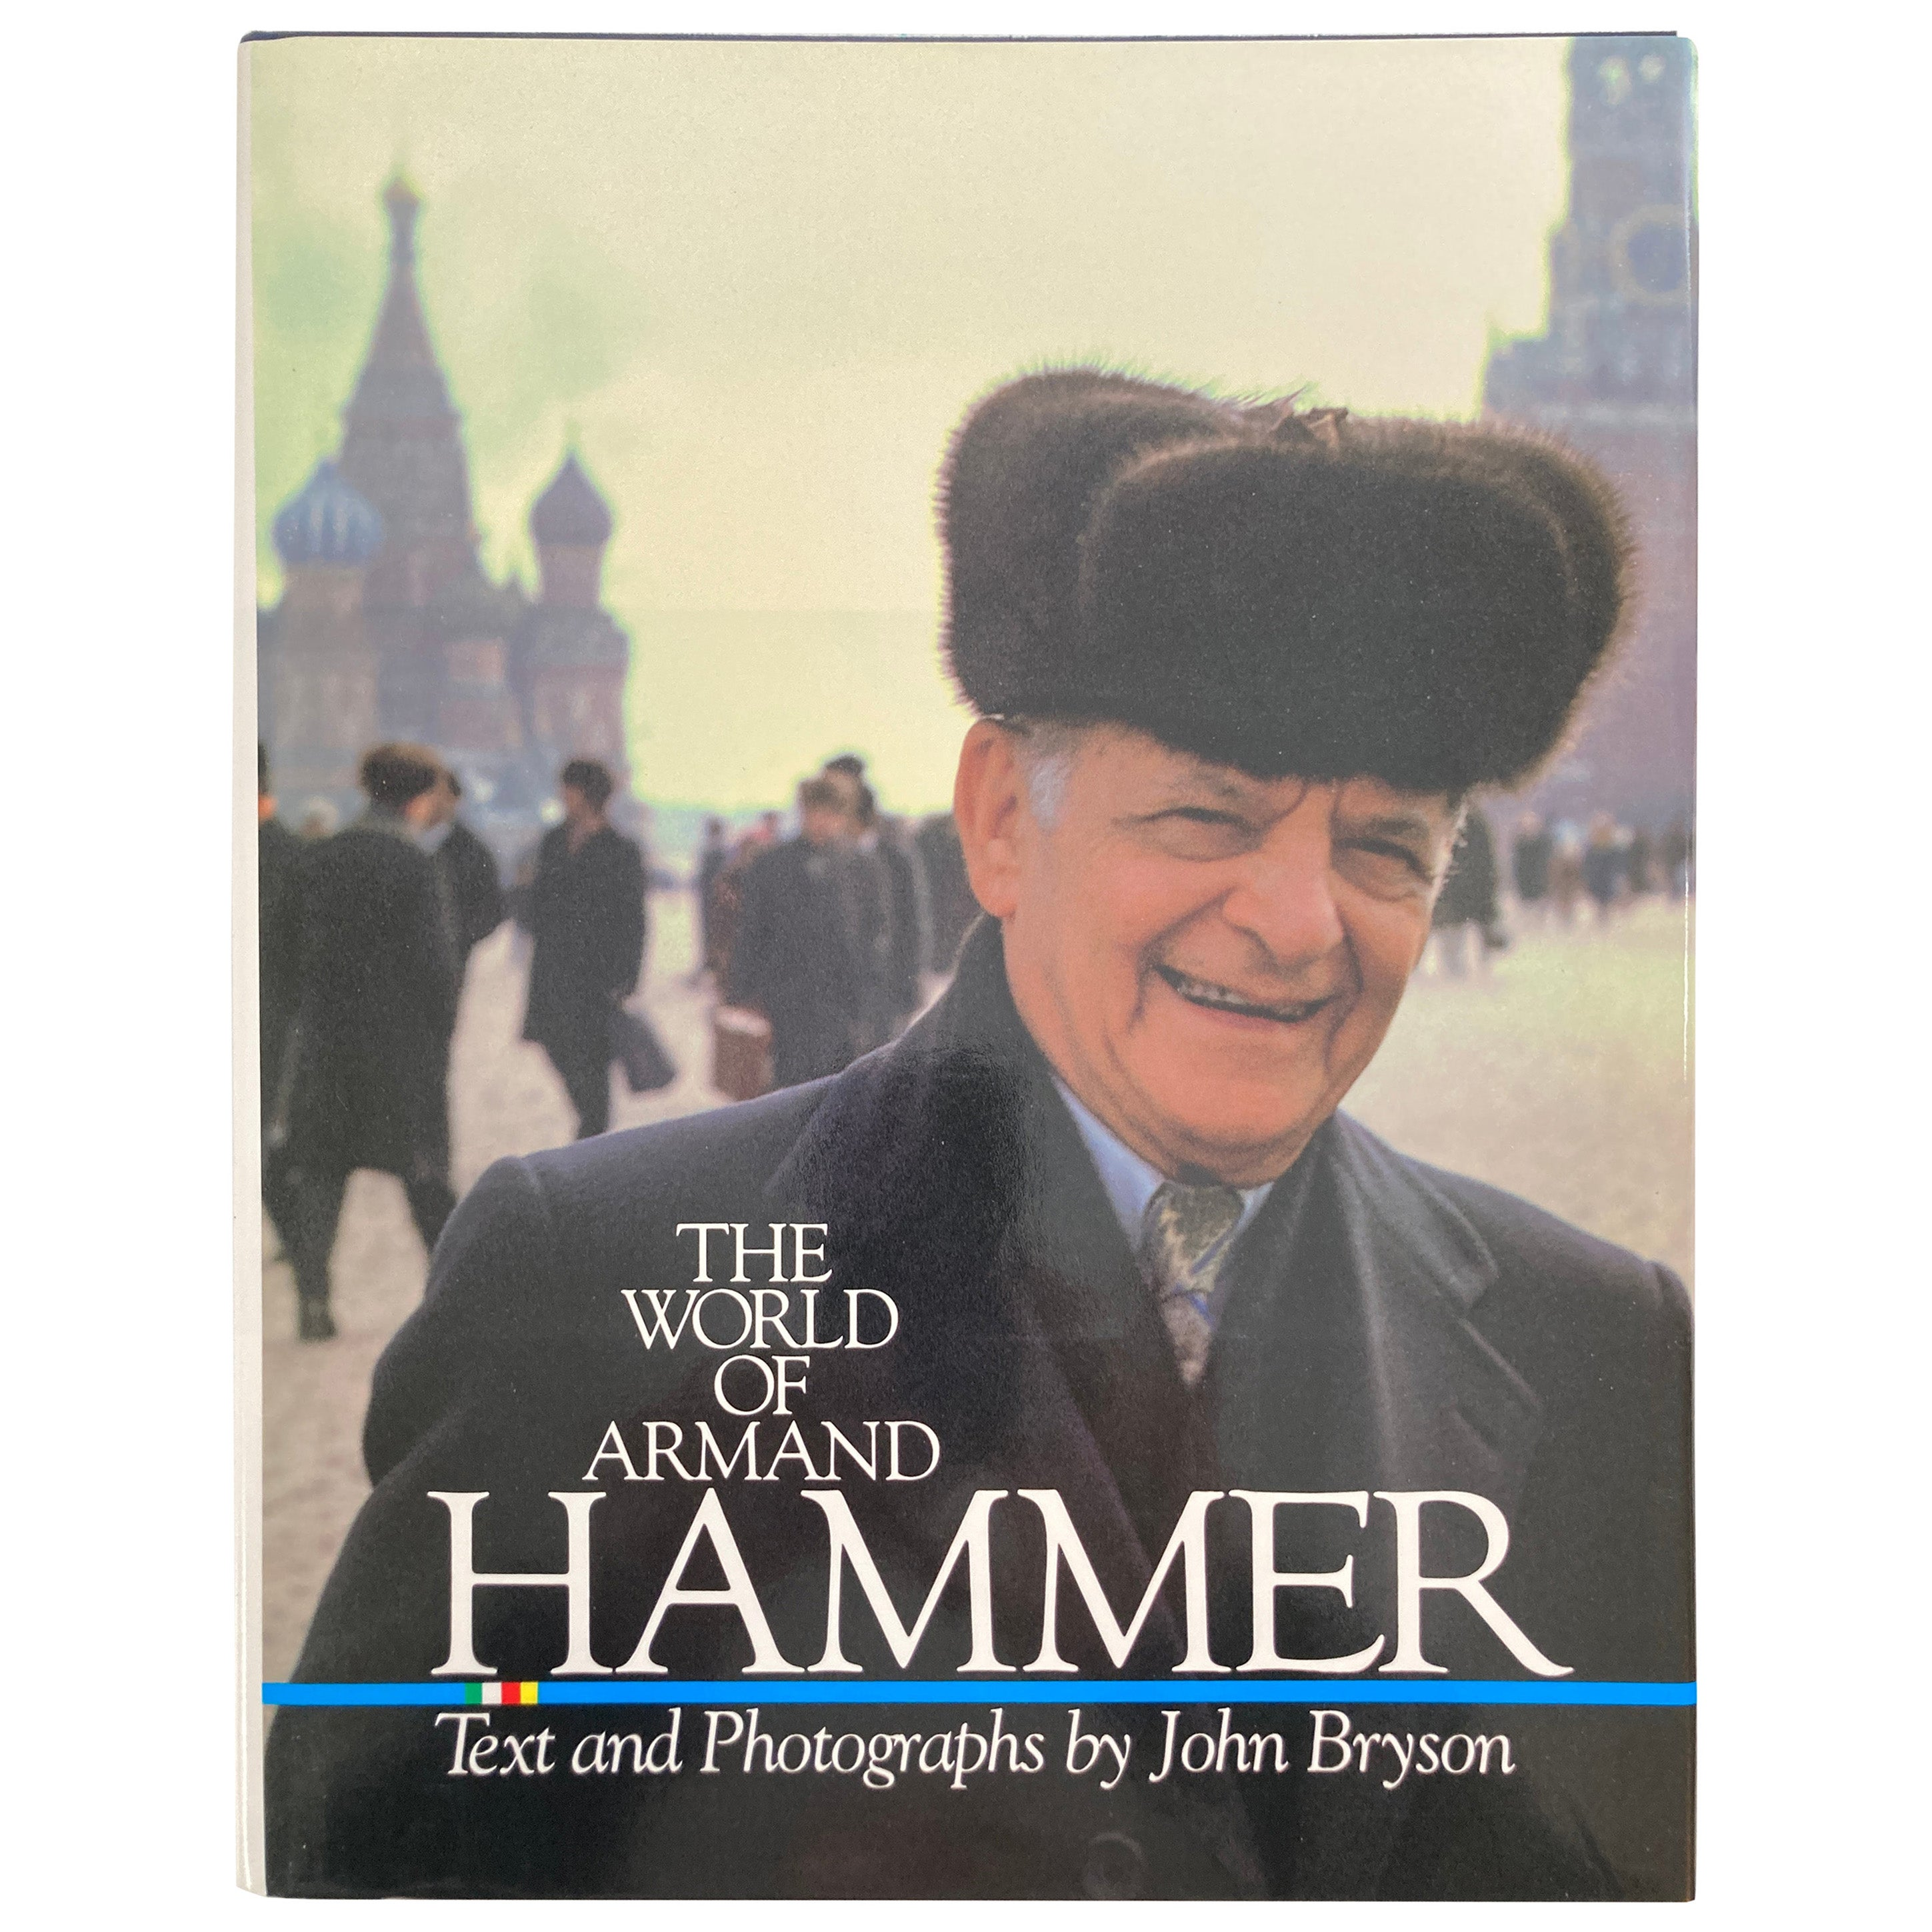 The World of Armand Hammer by John Bryson, Hardcover Coffee Table Book